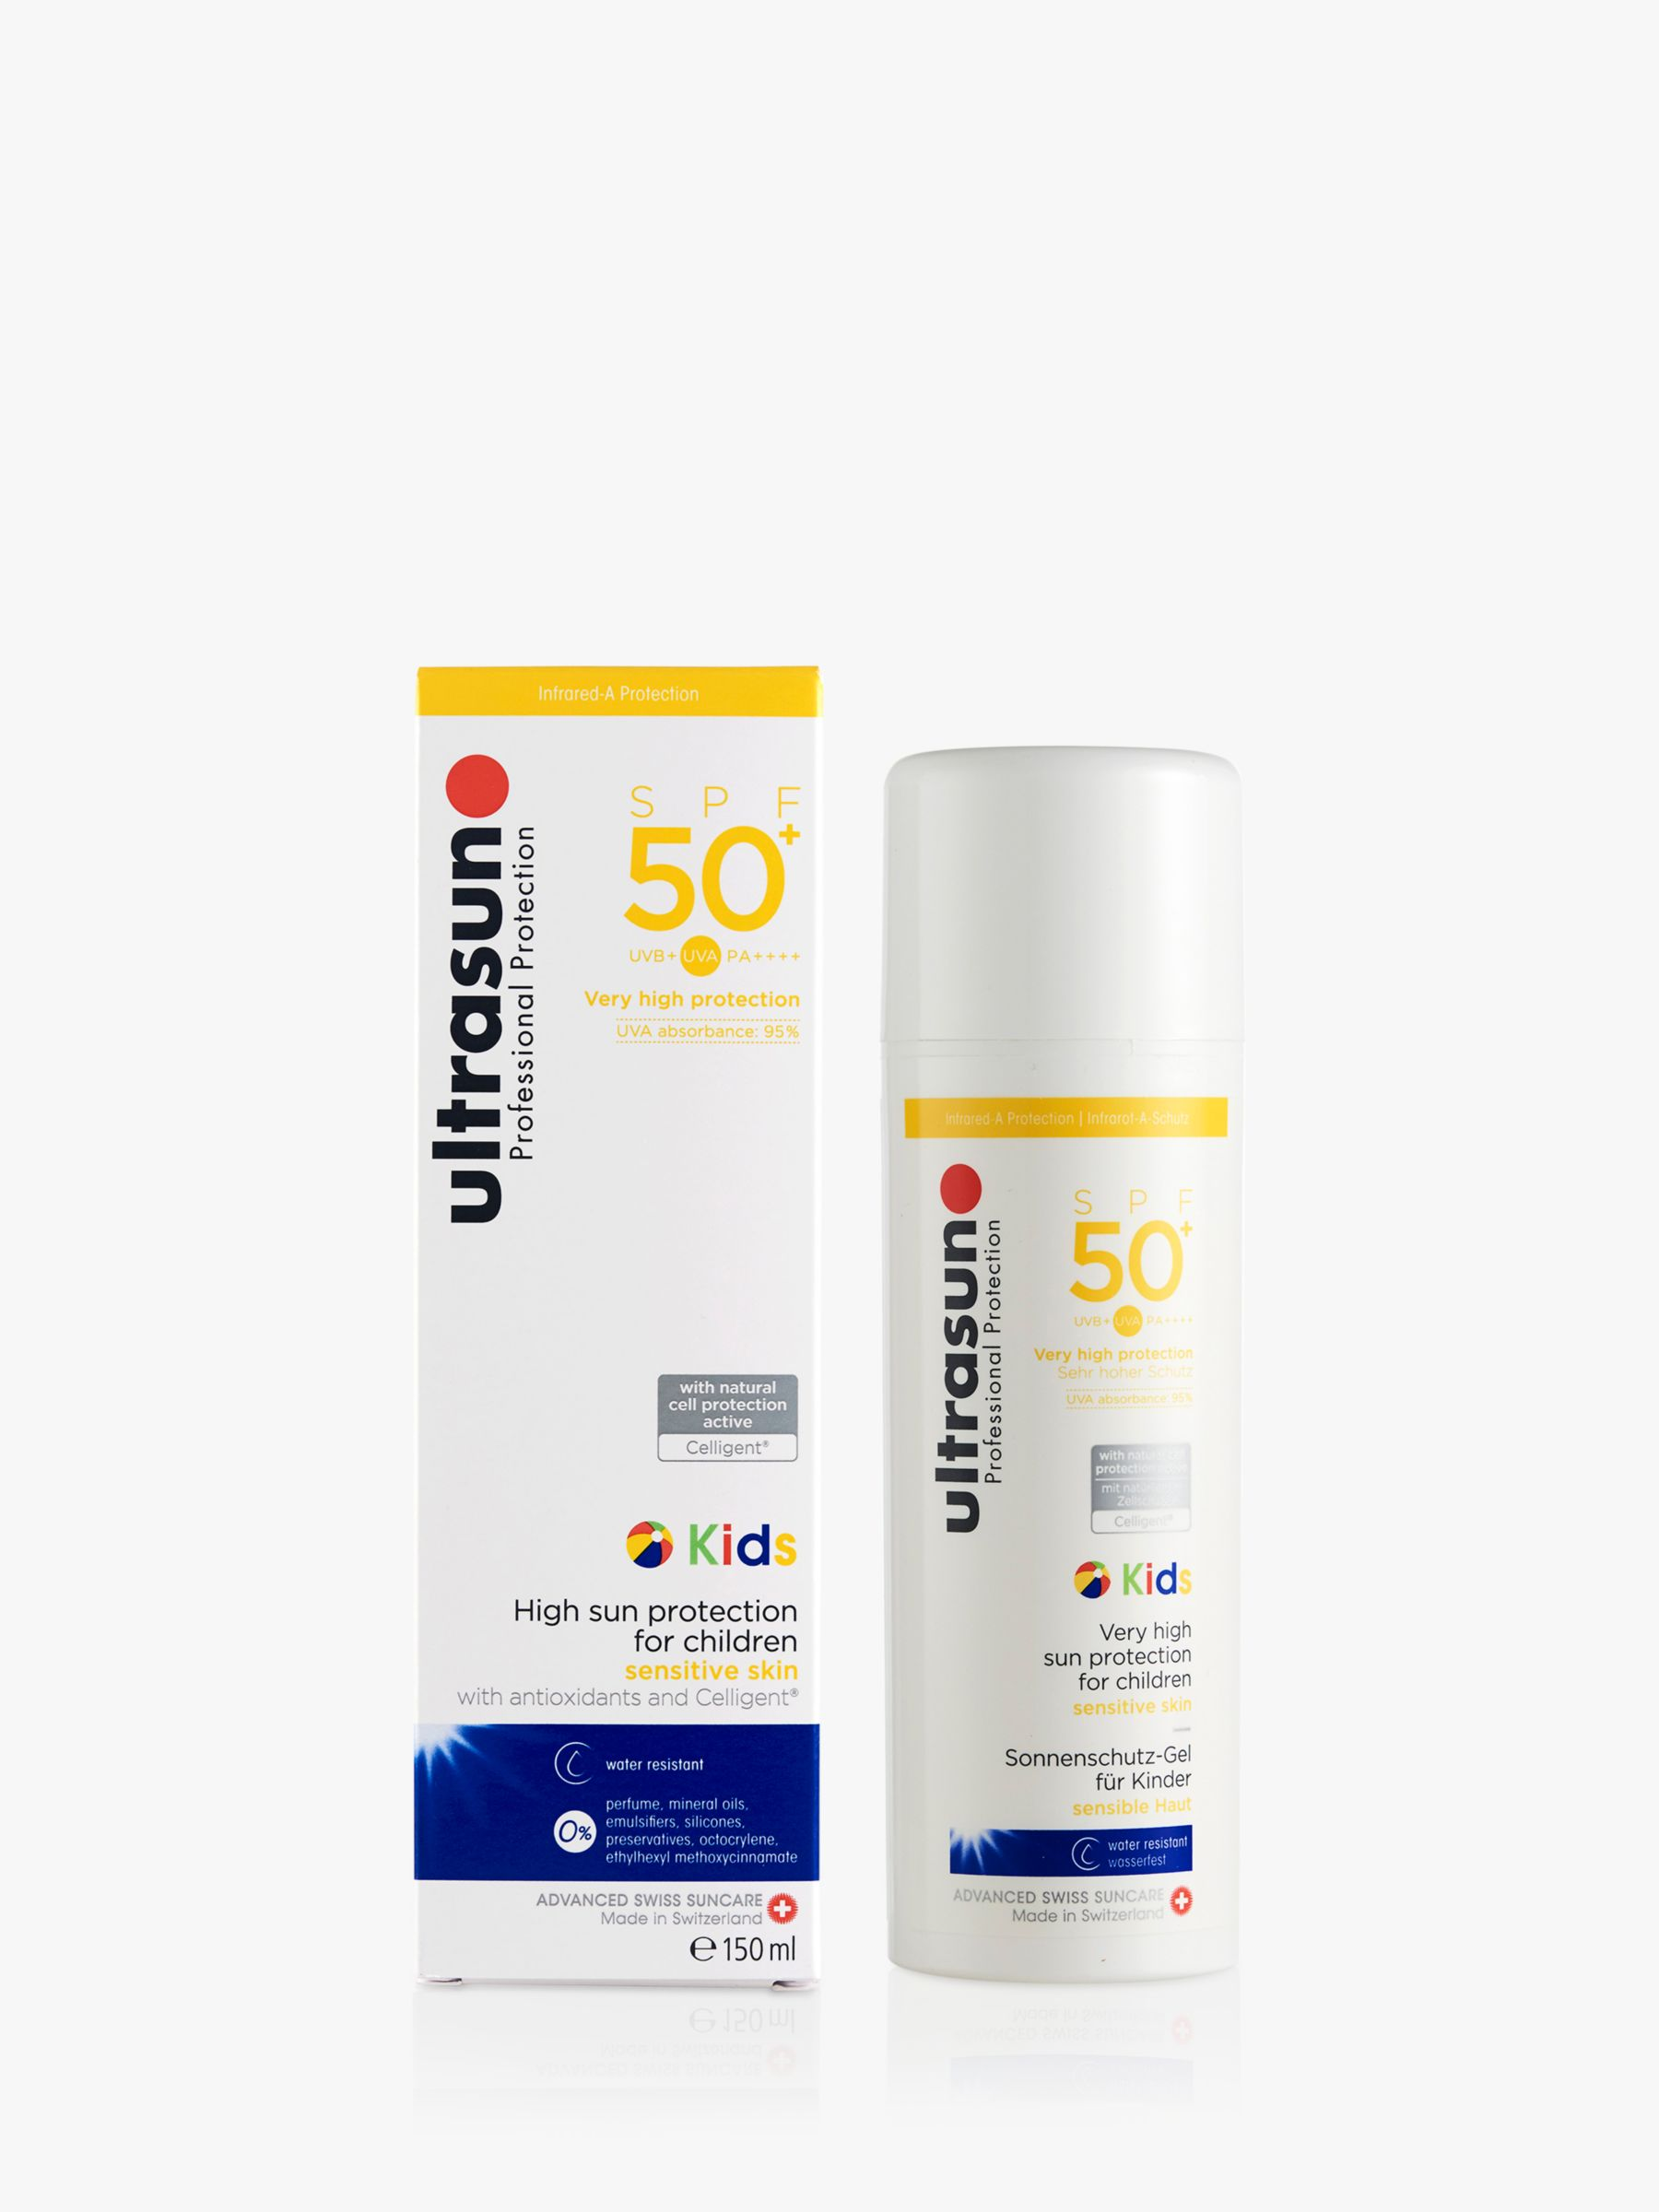 Ultrasun Ultrasun Kids SPF50+ High Protection For Children Sun Cream, 150ml